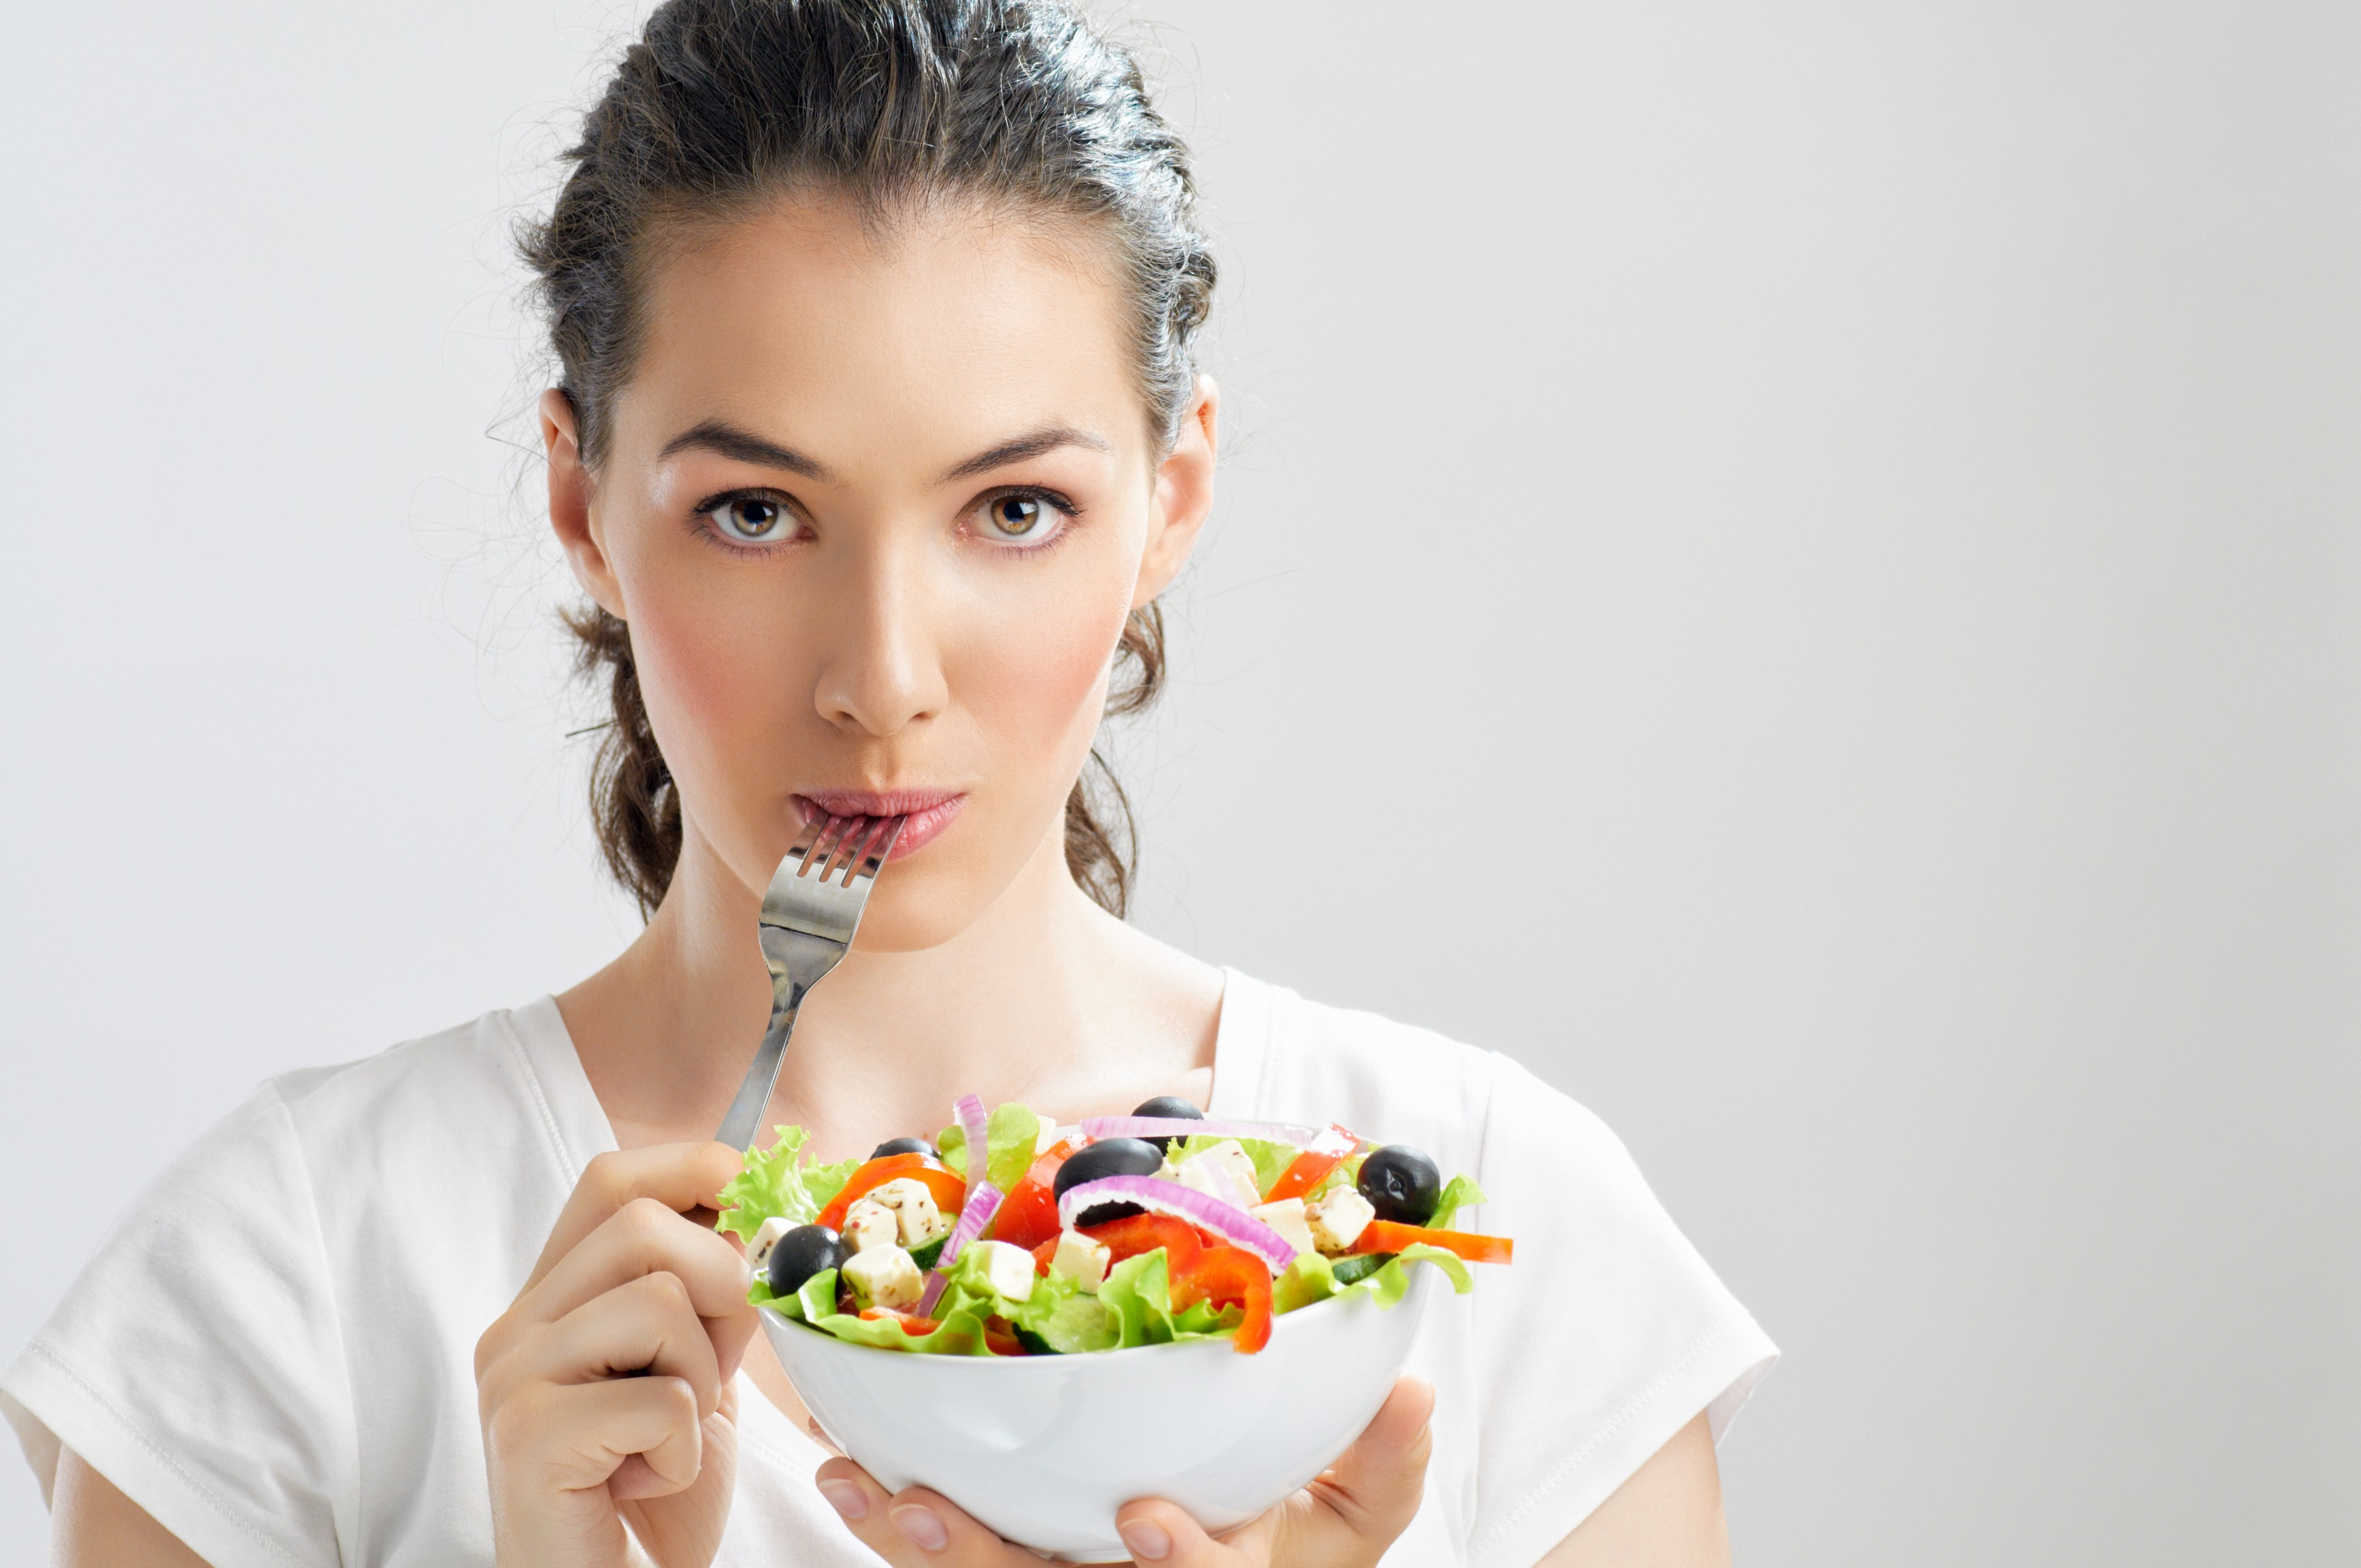 7 Essential Things to Know When You Are on a Diet